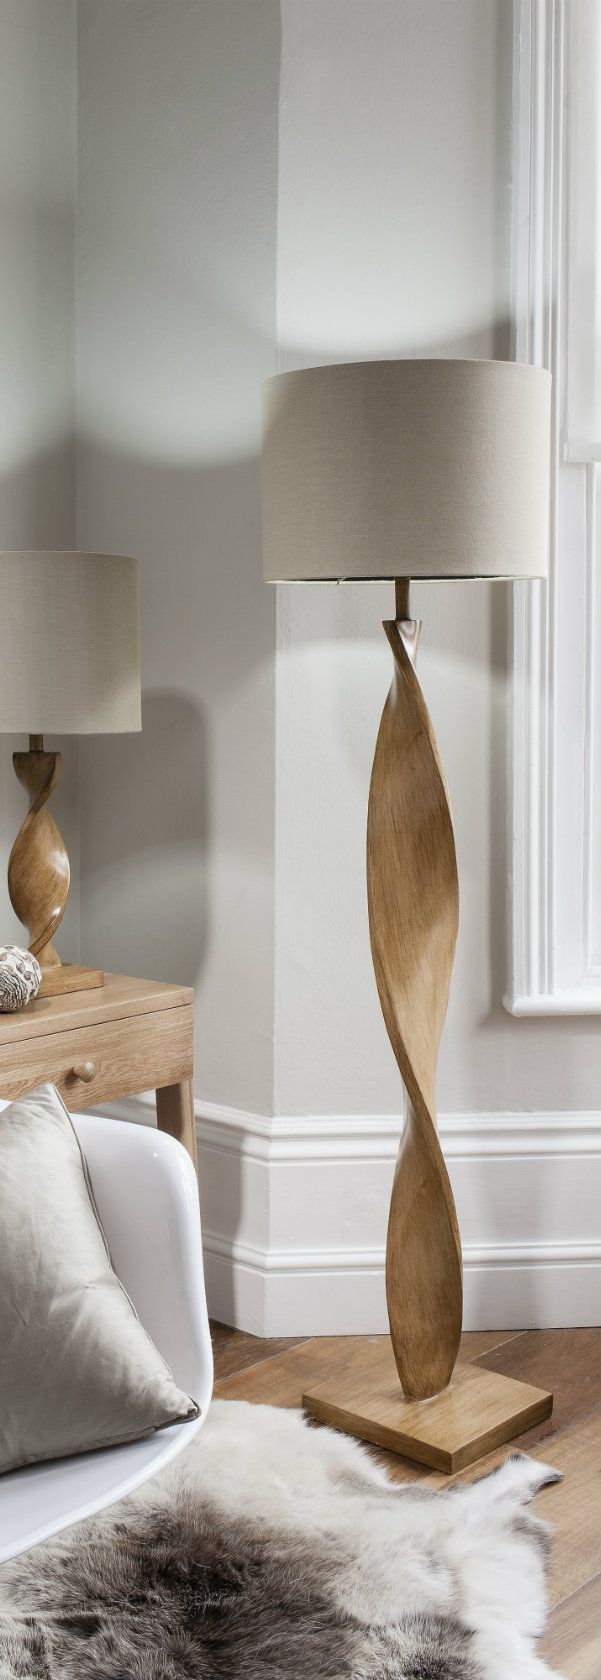 Floor lamp tables - Argenta 160cm Twisting Wood Floor Lamp